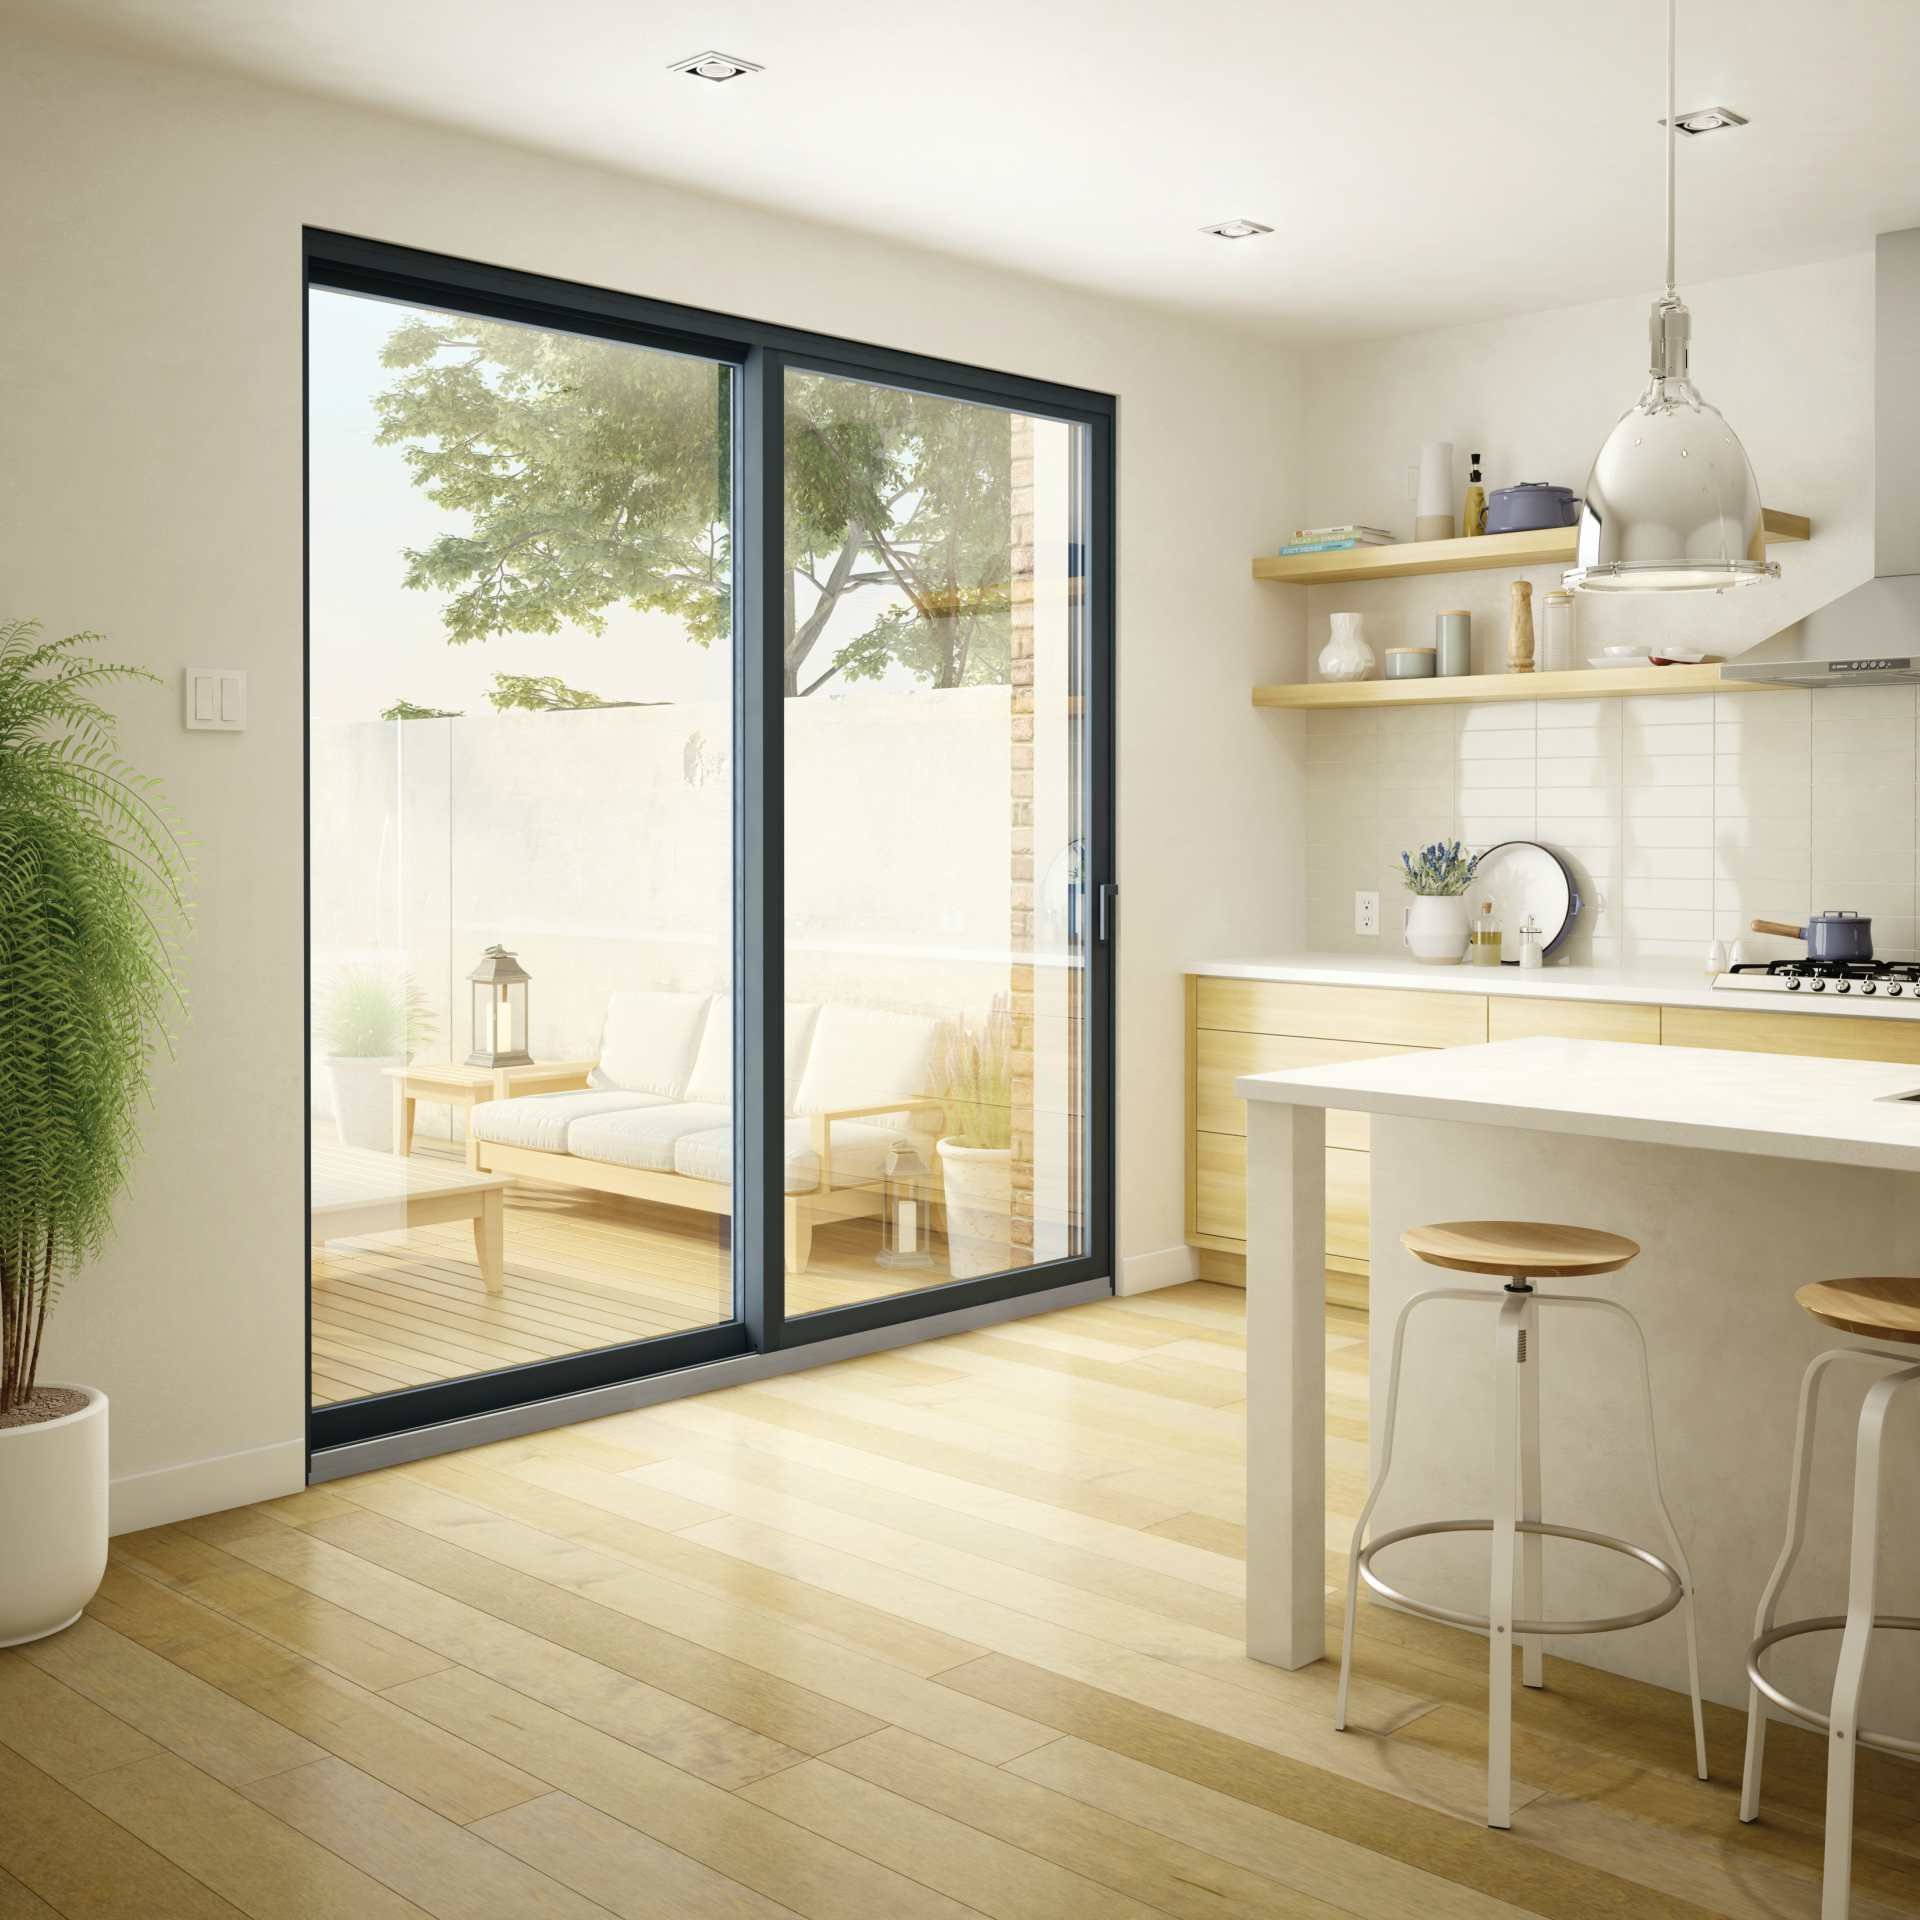 Personalize And Customize Your Urbania Door Through Contemporary Or Classic  Handles, Multiple Color And Glass Options.